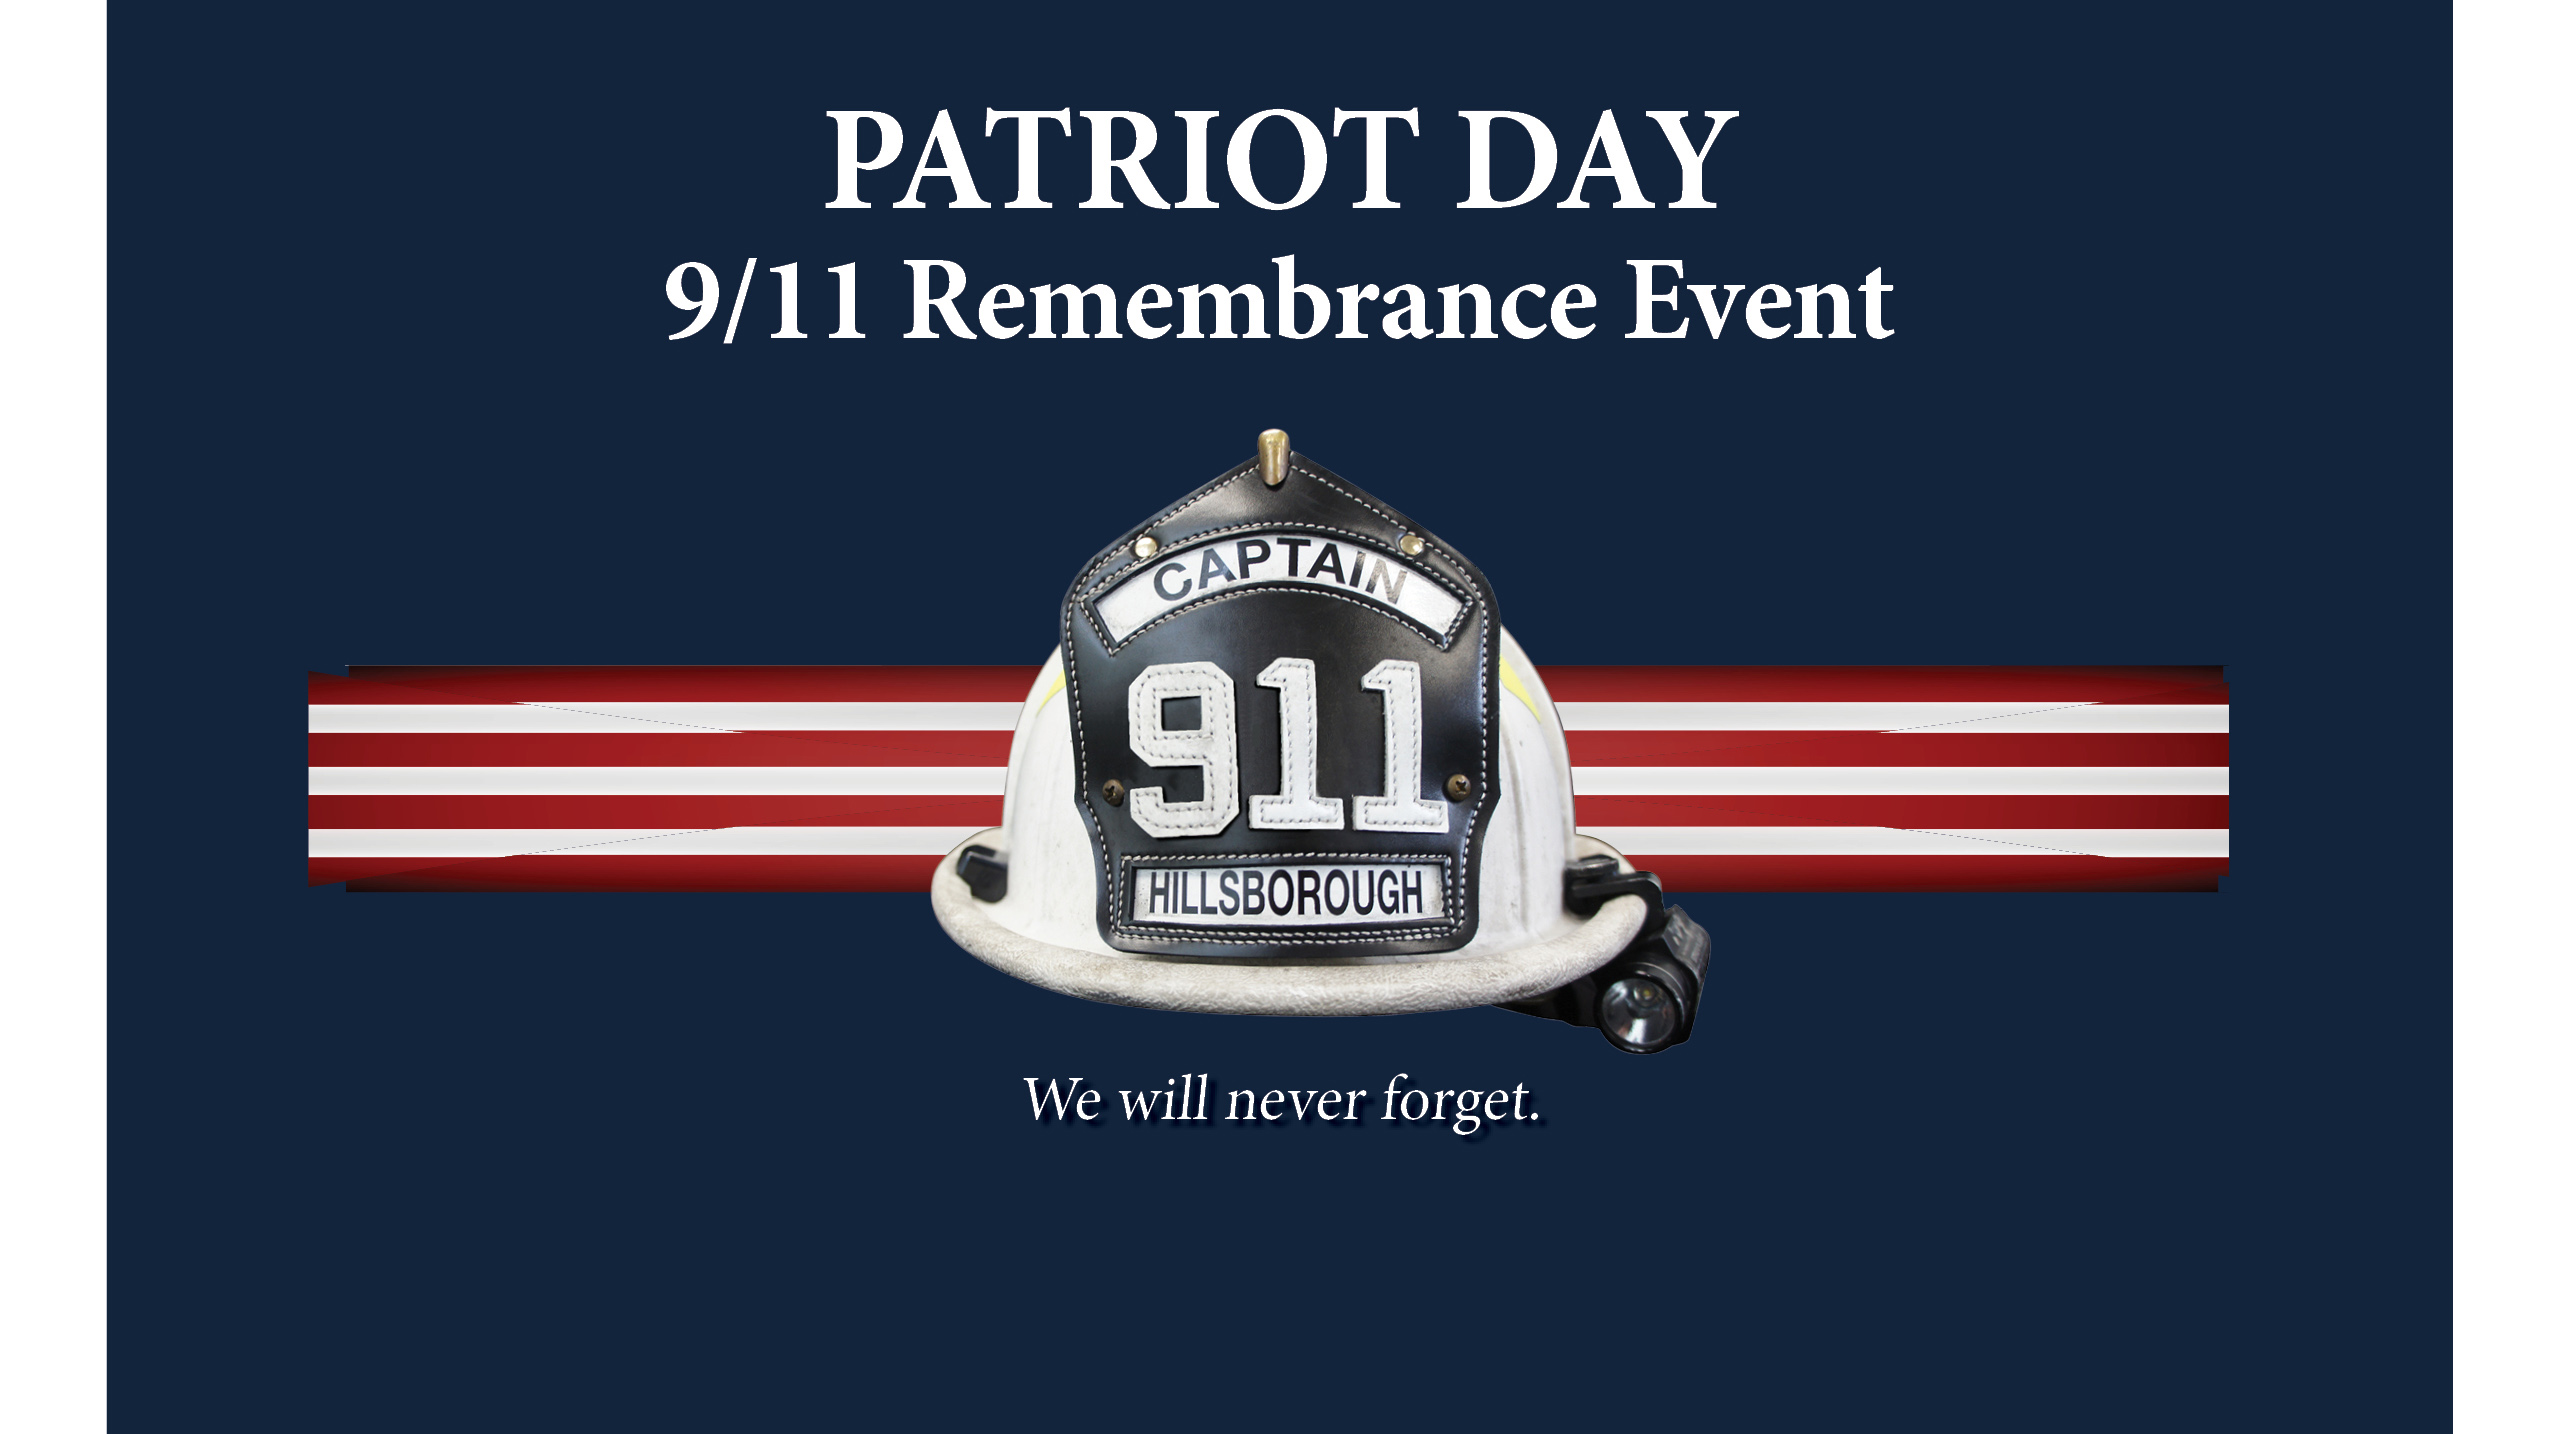 White firefighter helmet with Captain 911 Hillsborough patch on a red and white striped bar behind it on a field of navy blue - Patriot Day 9/11 Rememberence Event - We will never forget